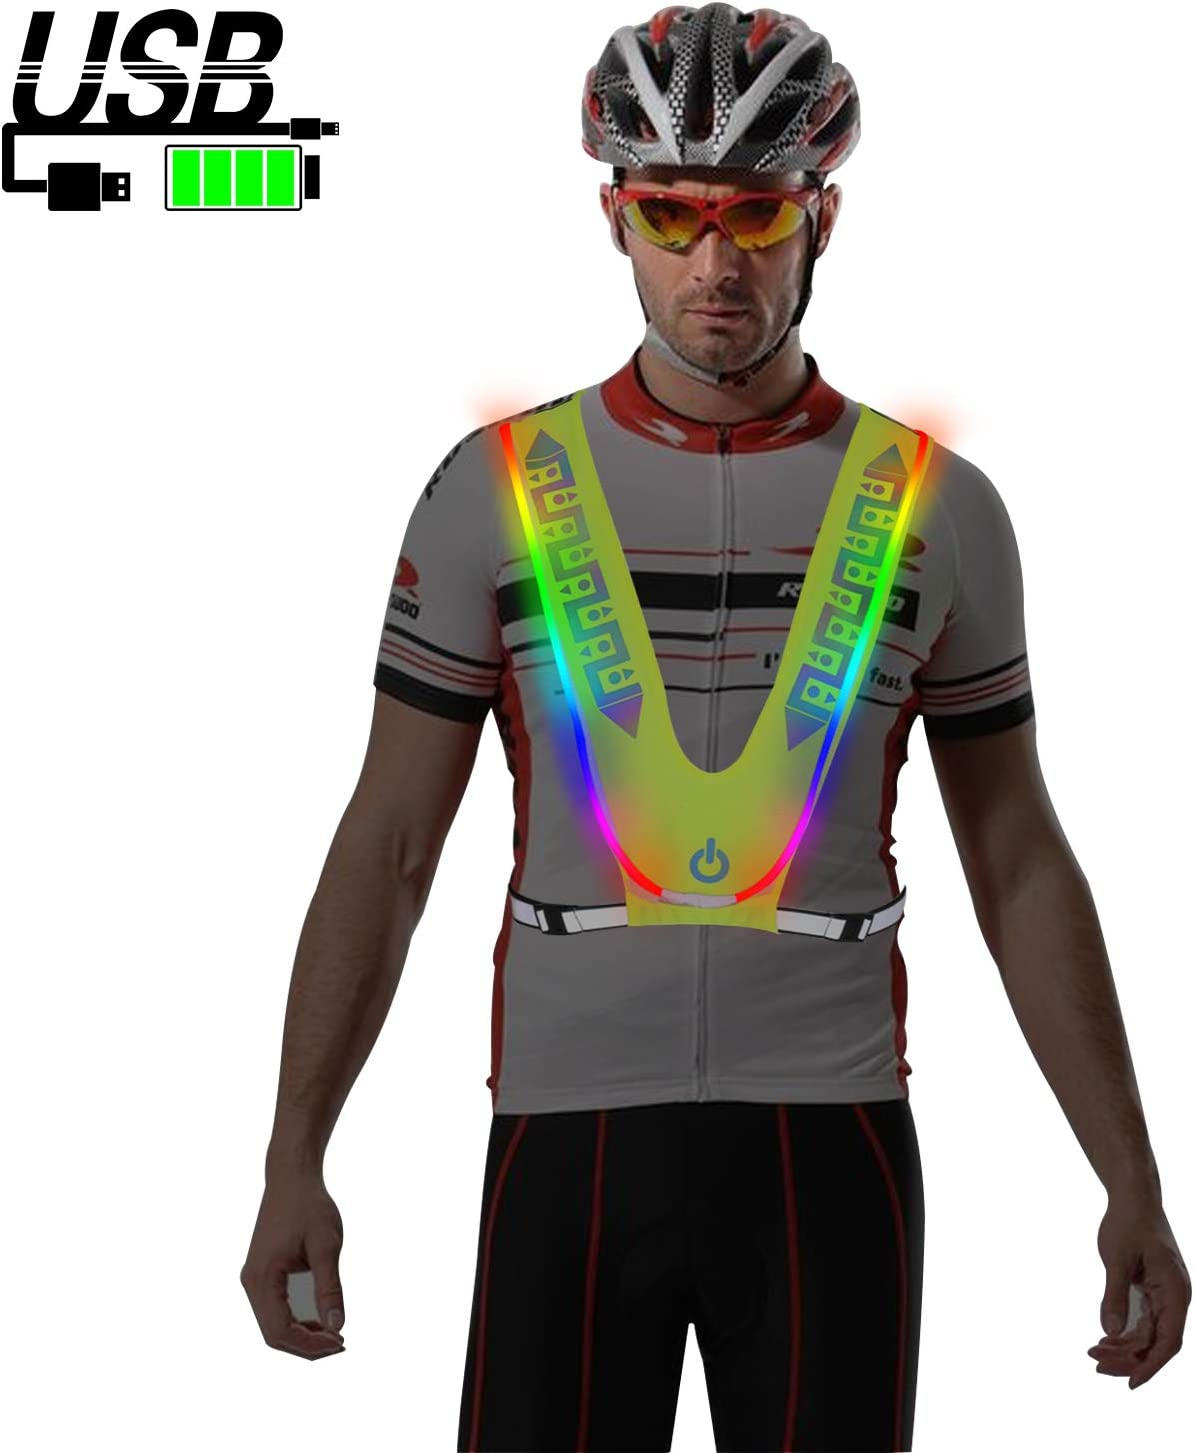 MORLIGHT LED Reflective Vest Adjustable Rechargeable High Visibility Safety Vest Gear for Night Running, Dog Walking, Jogging, Cycling, Motorcycling